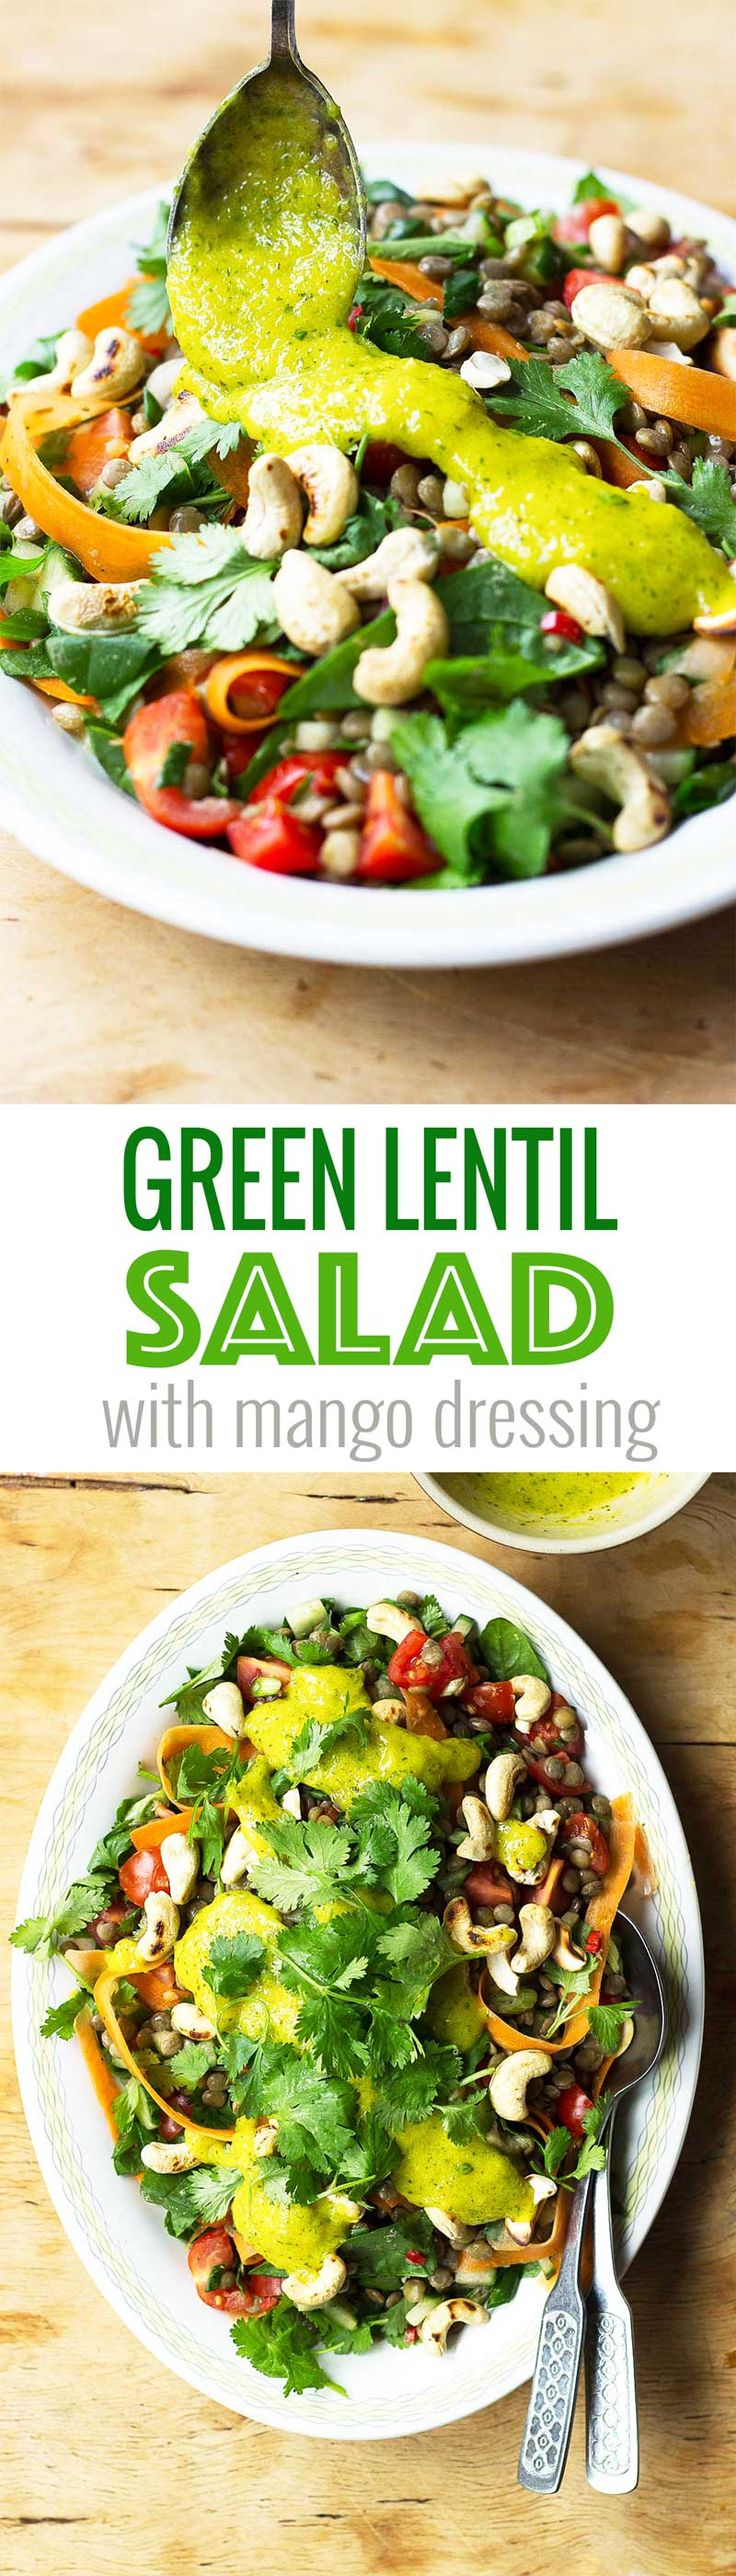 Green Lentil Salad with Mango Dressing! A delicious salad that's packed with flavour! This lentil salad is perfect for a midweek dinner and keeps really well too, making it ideal for packed lunch too! Vegan and gluten free! Get the recipe at www.nutritionistmeetschef.com